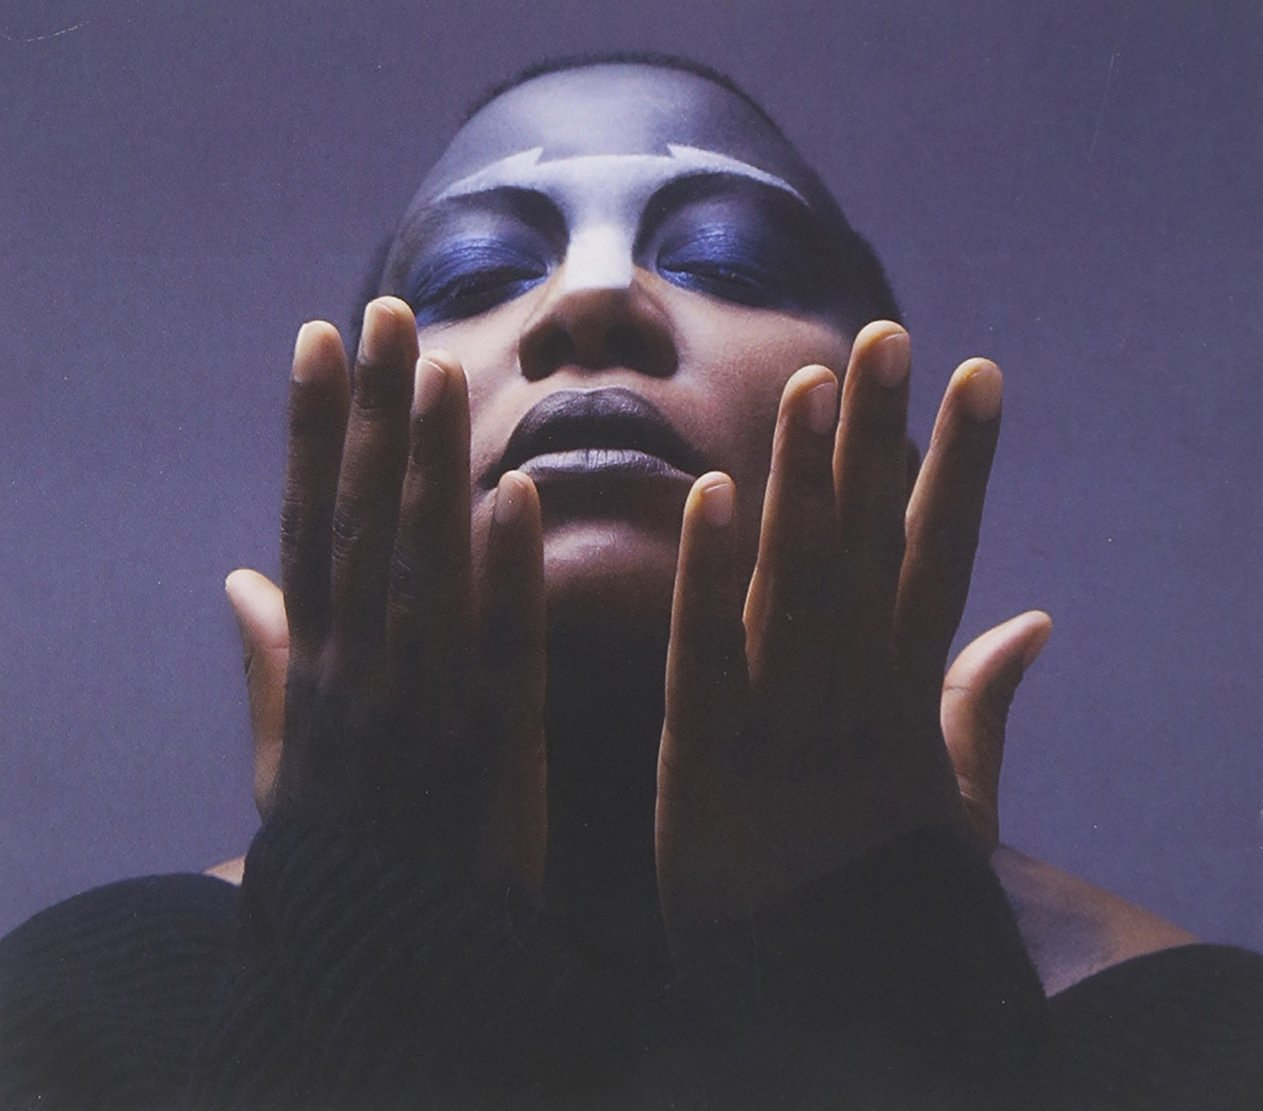 Meshell Ndegeocello Shines On 'Comet, Come to Me'